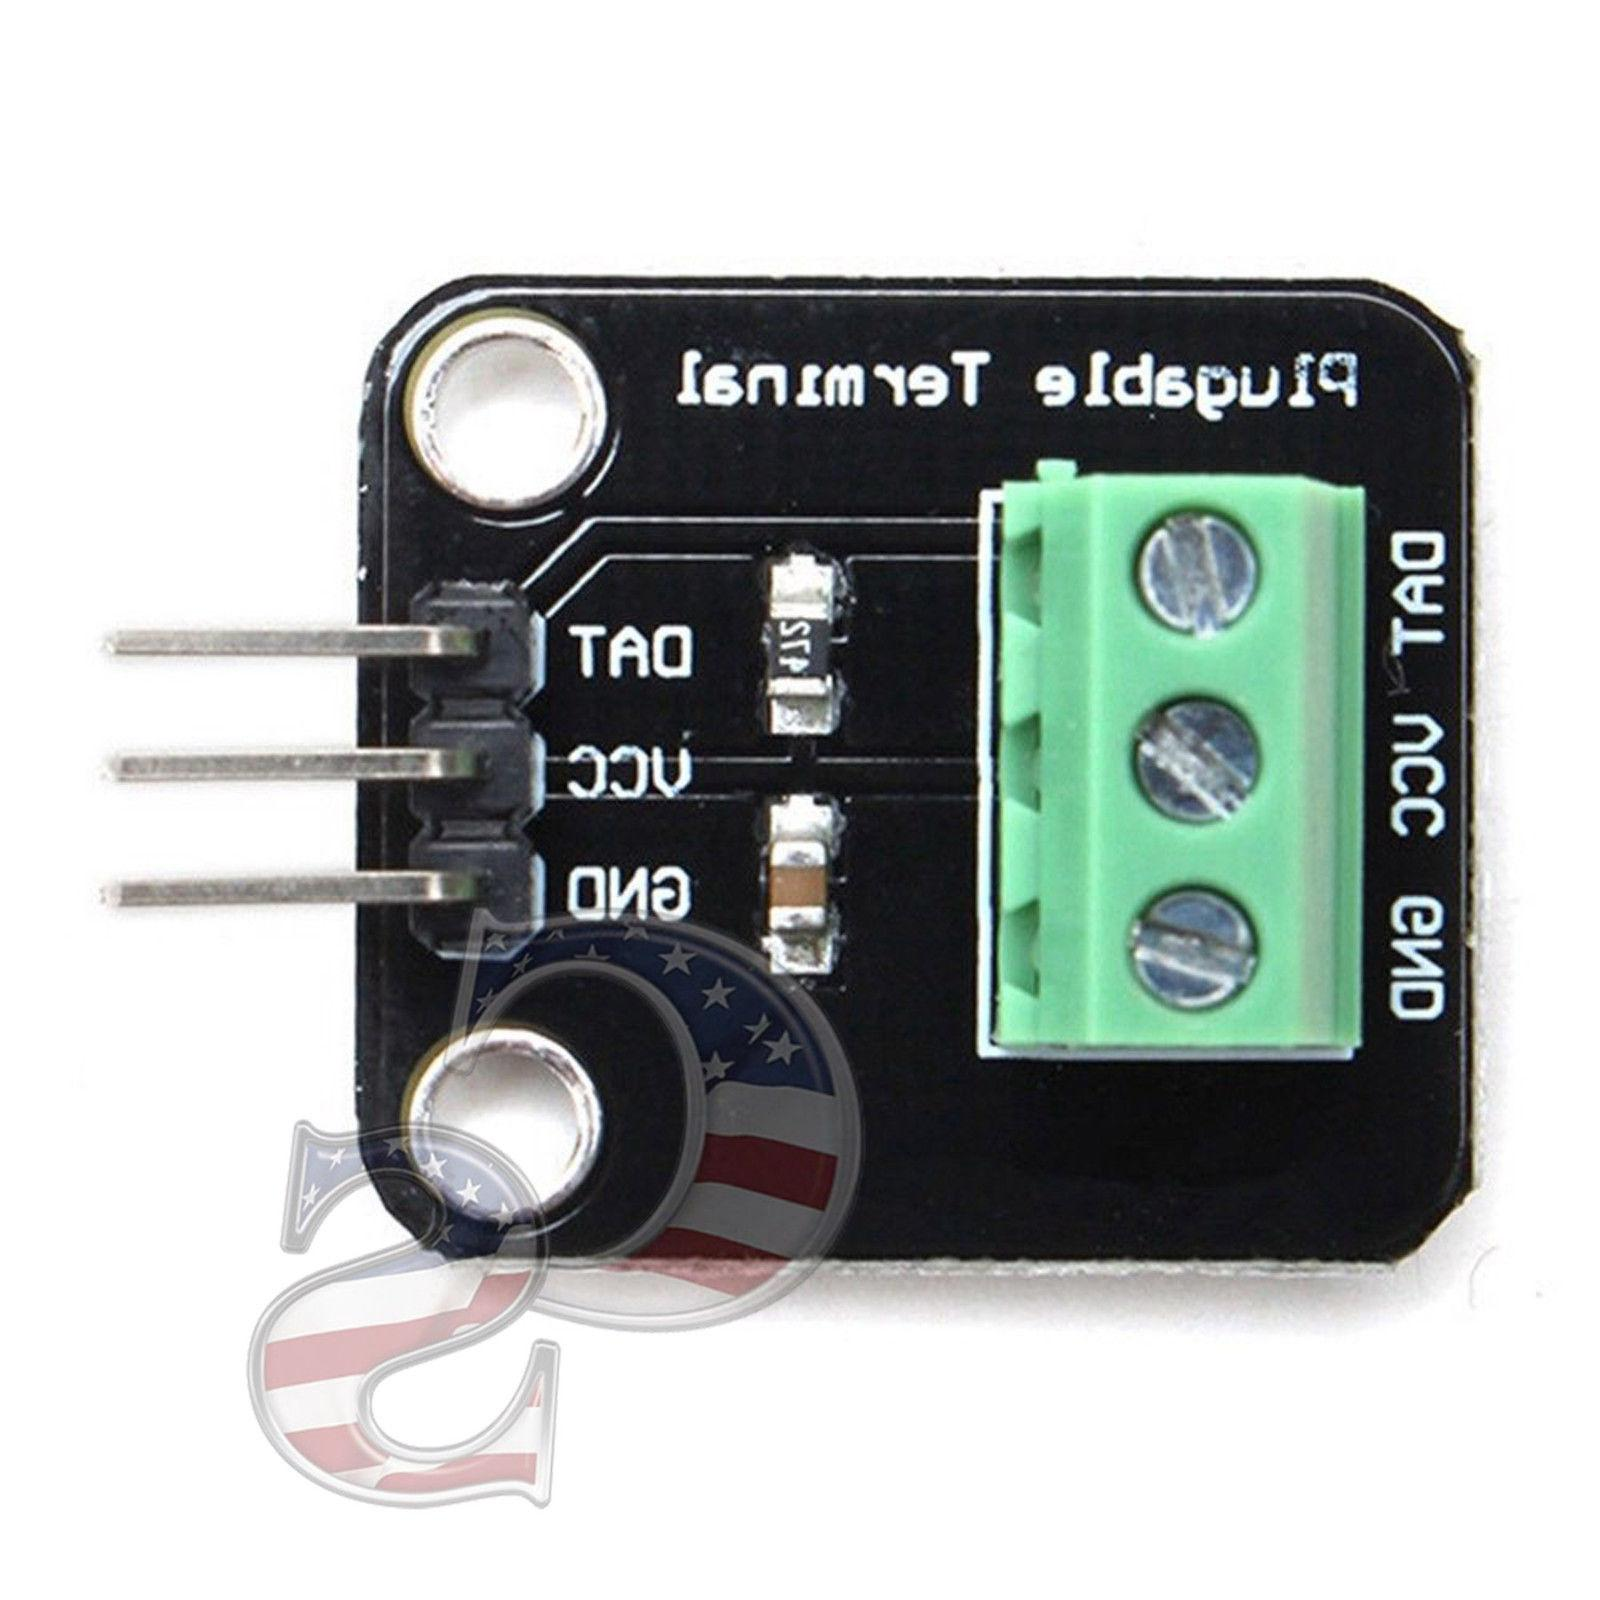 New DS18B20 Thermometer Sensor Module For Arduino Pi